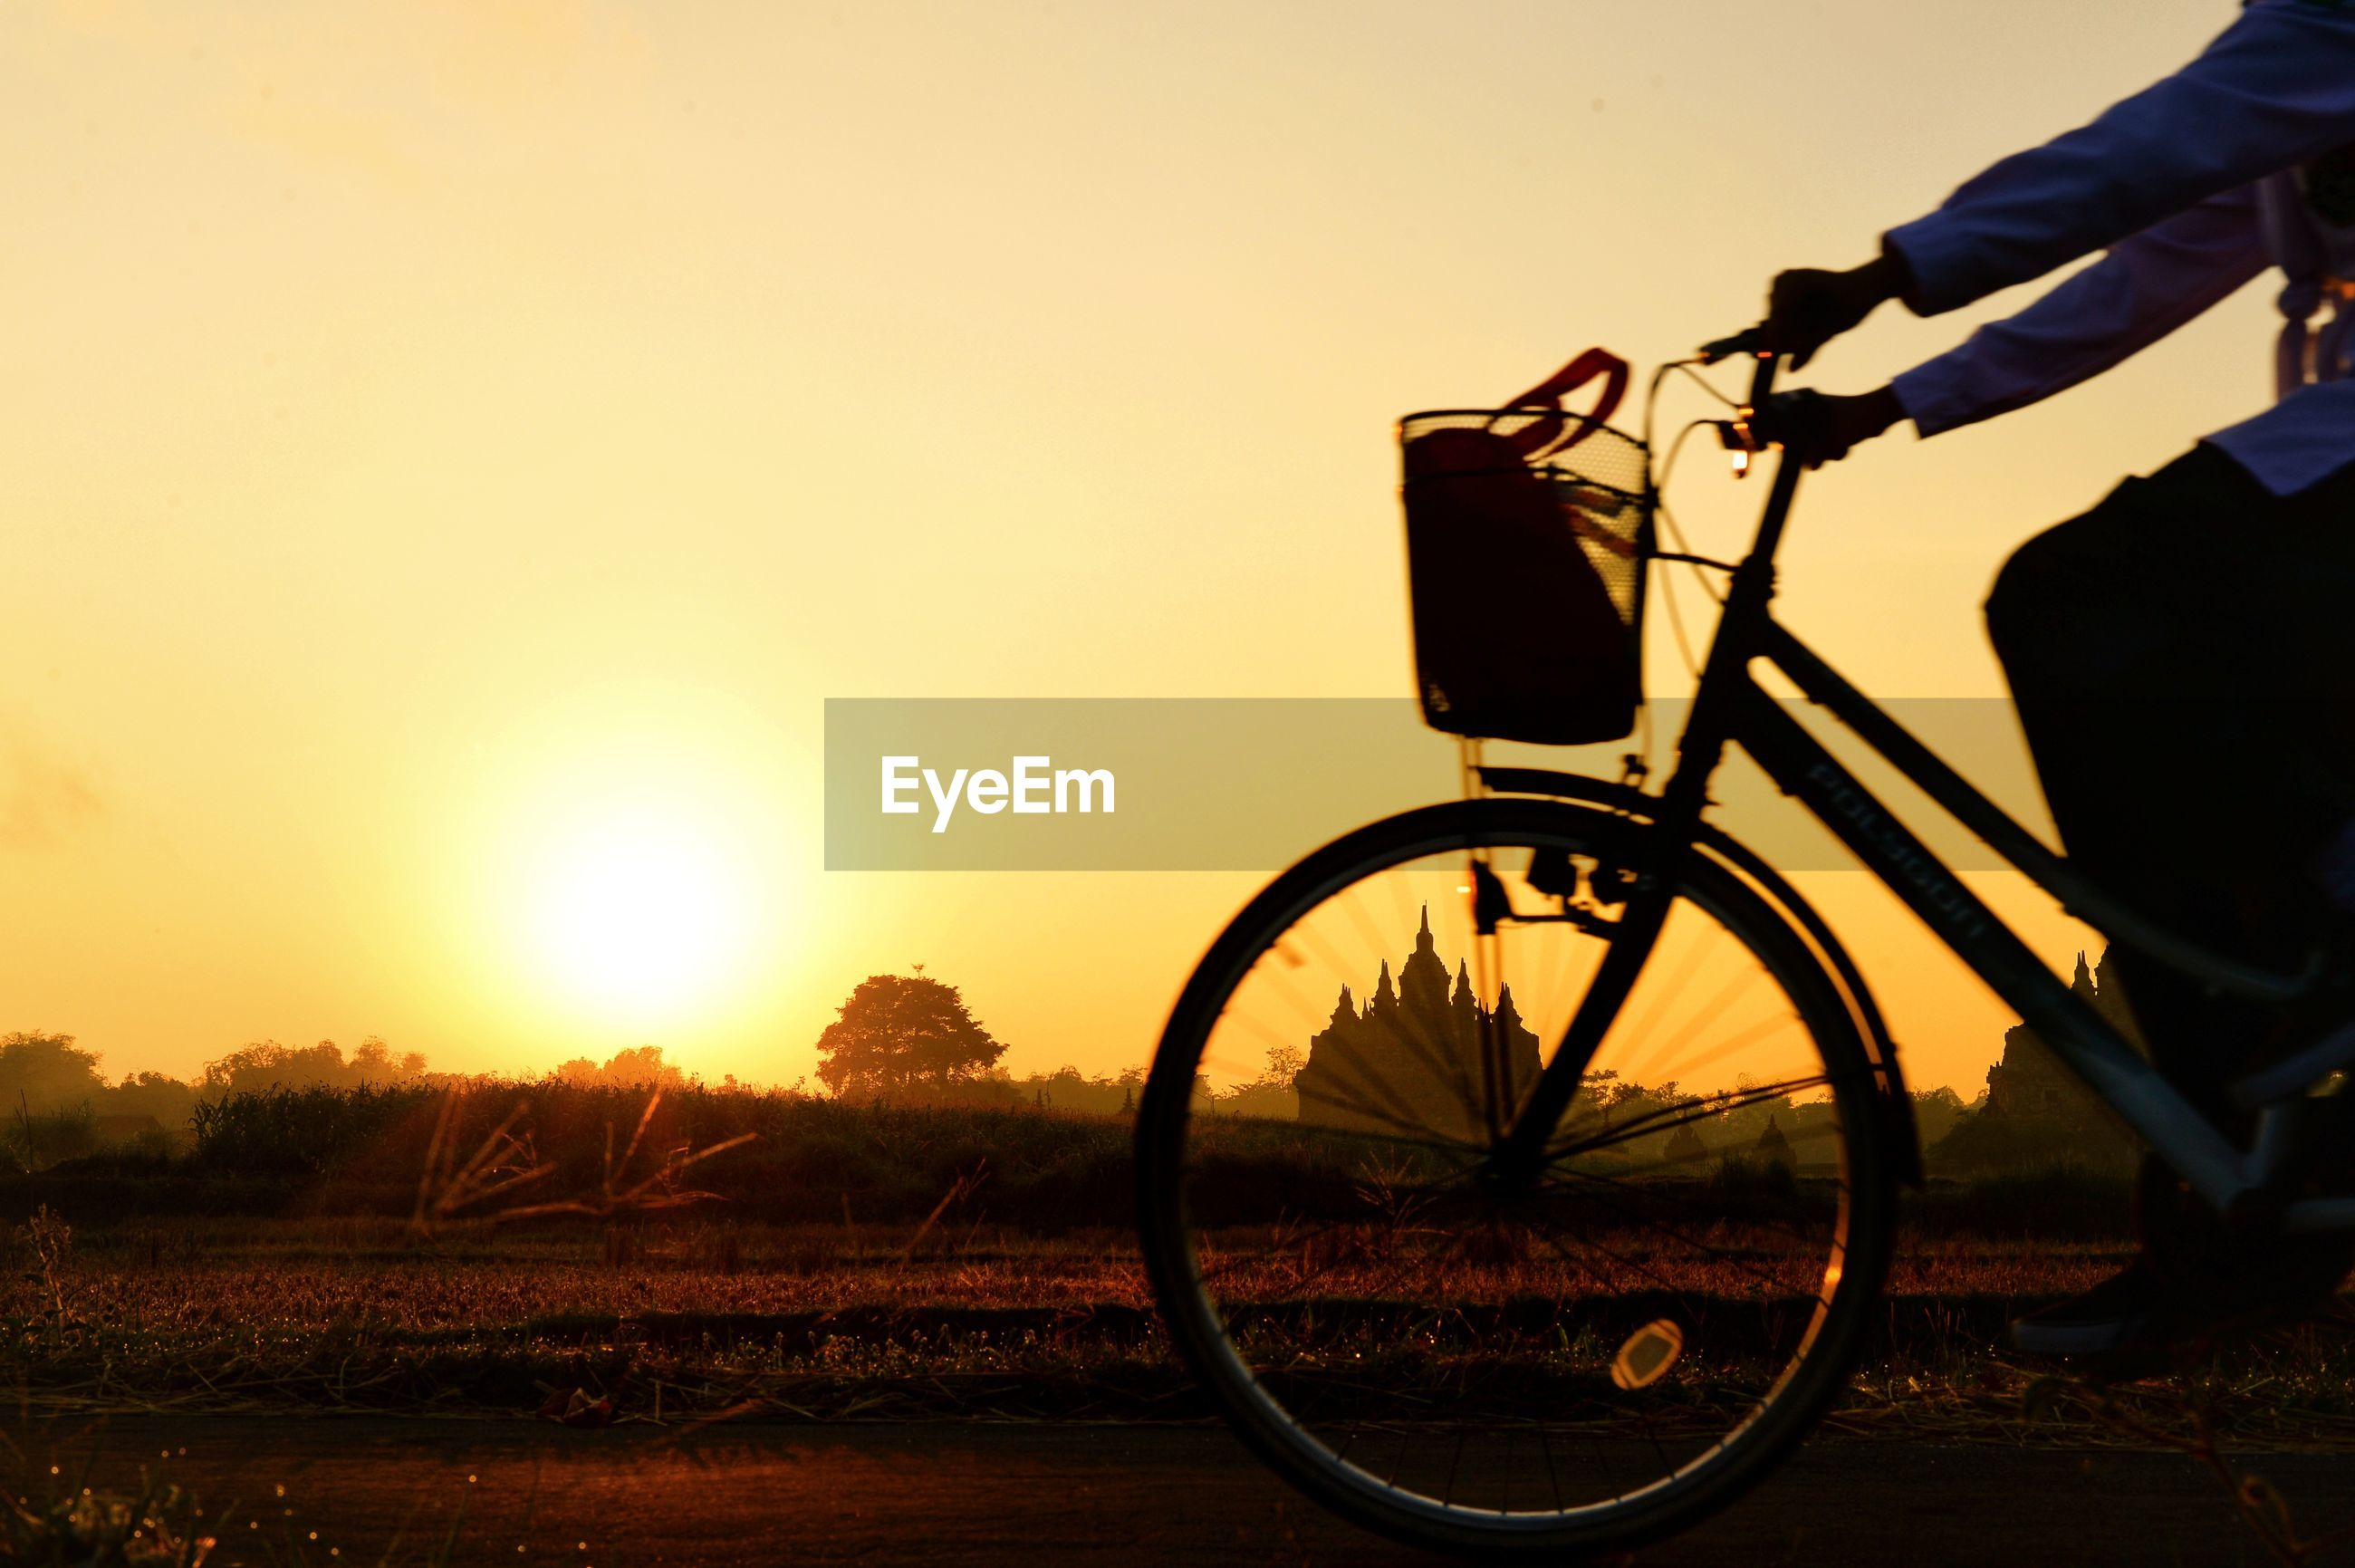 Silhouette woman riding bicycle on street during sunset